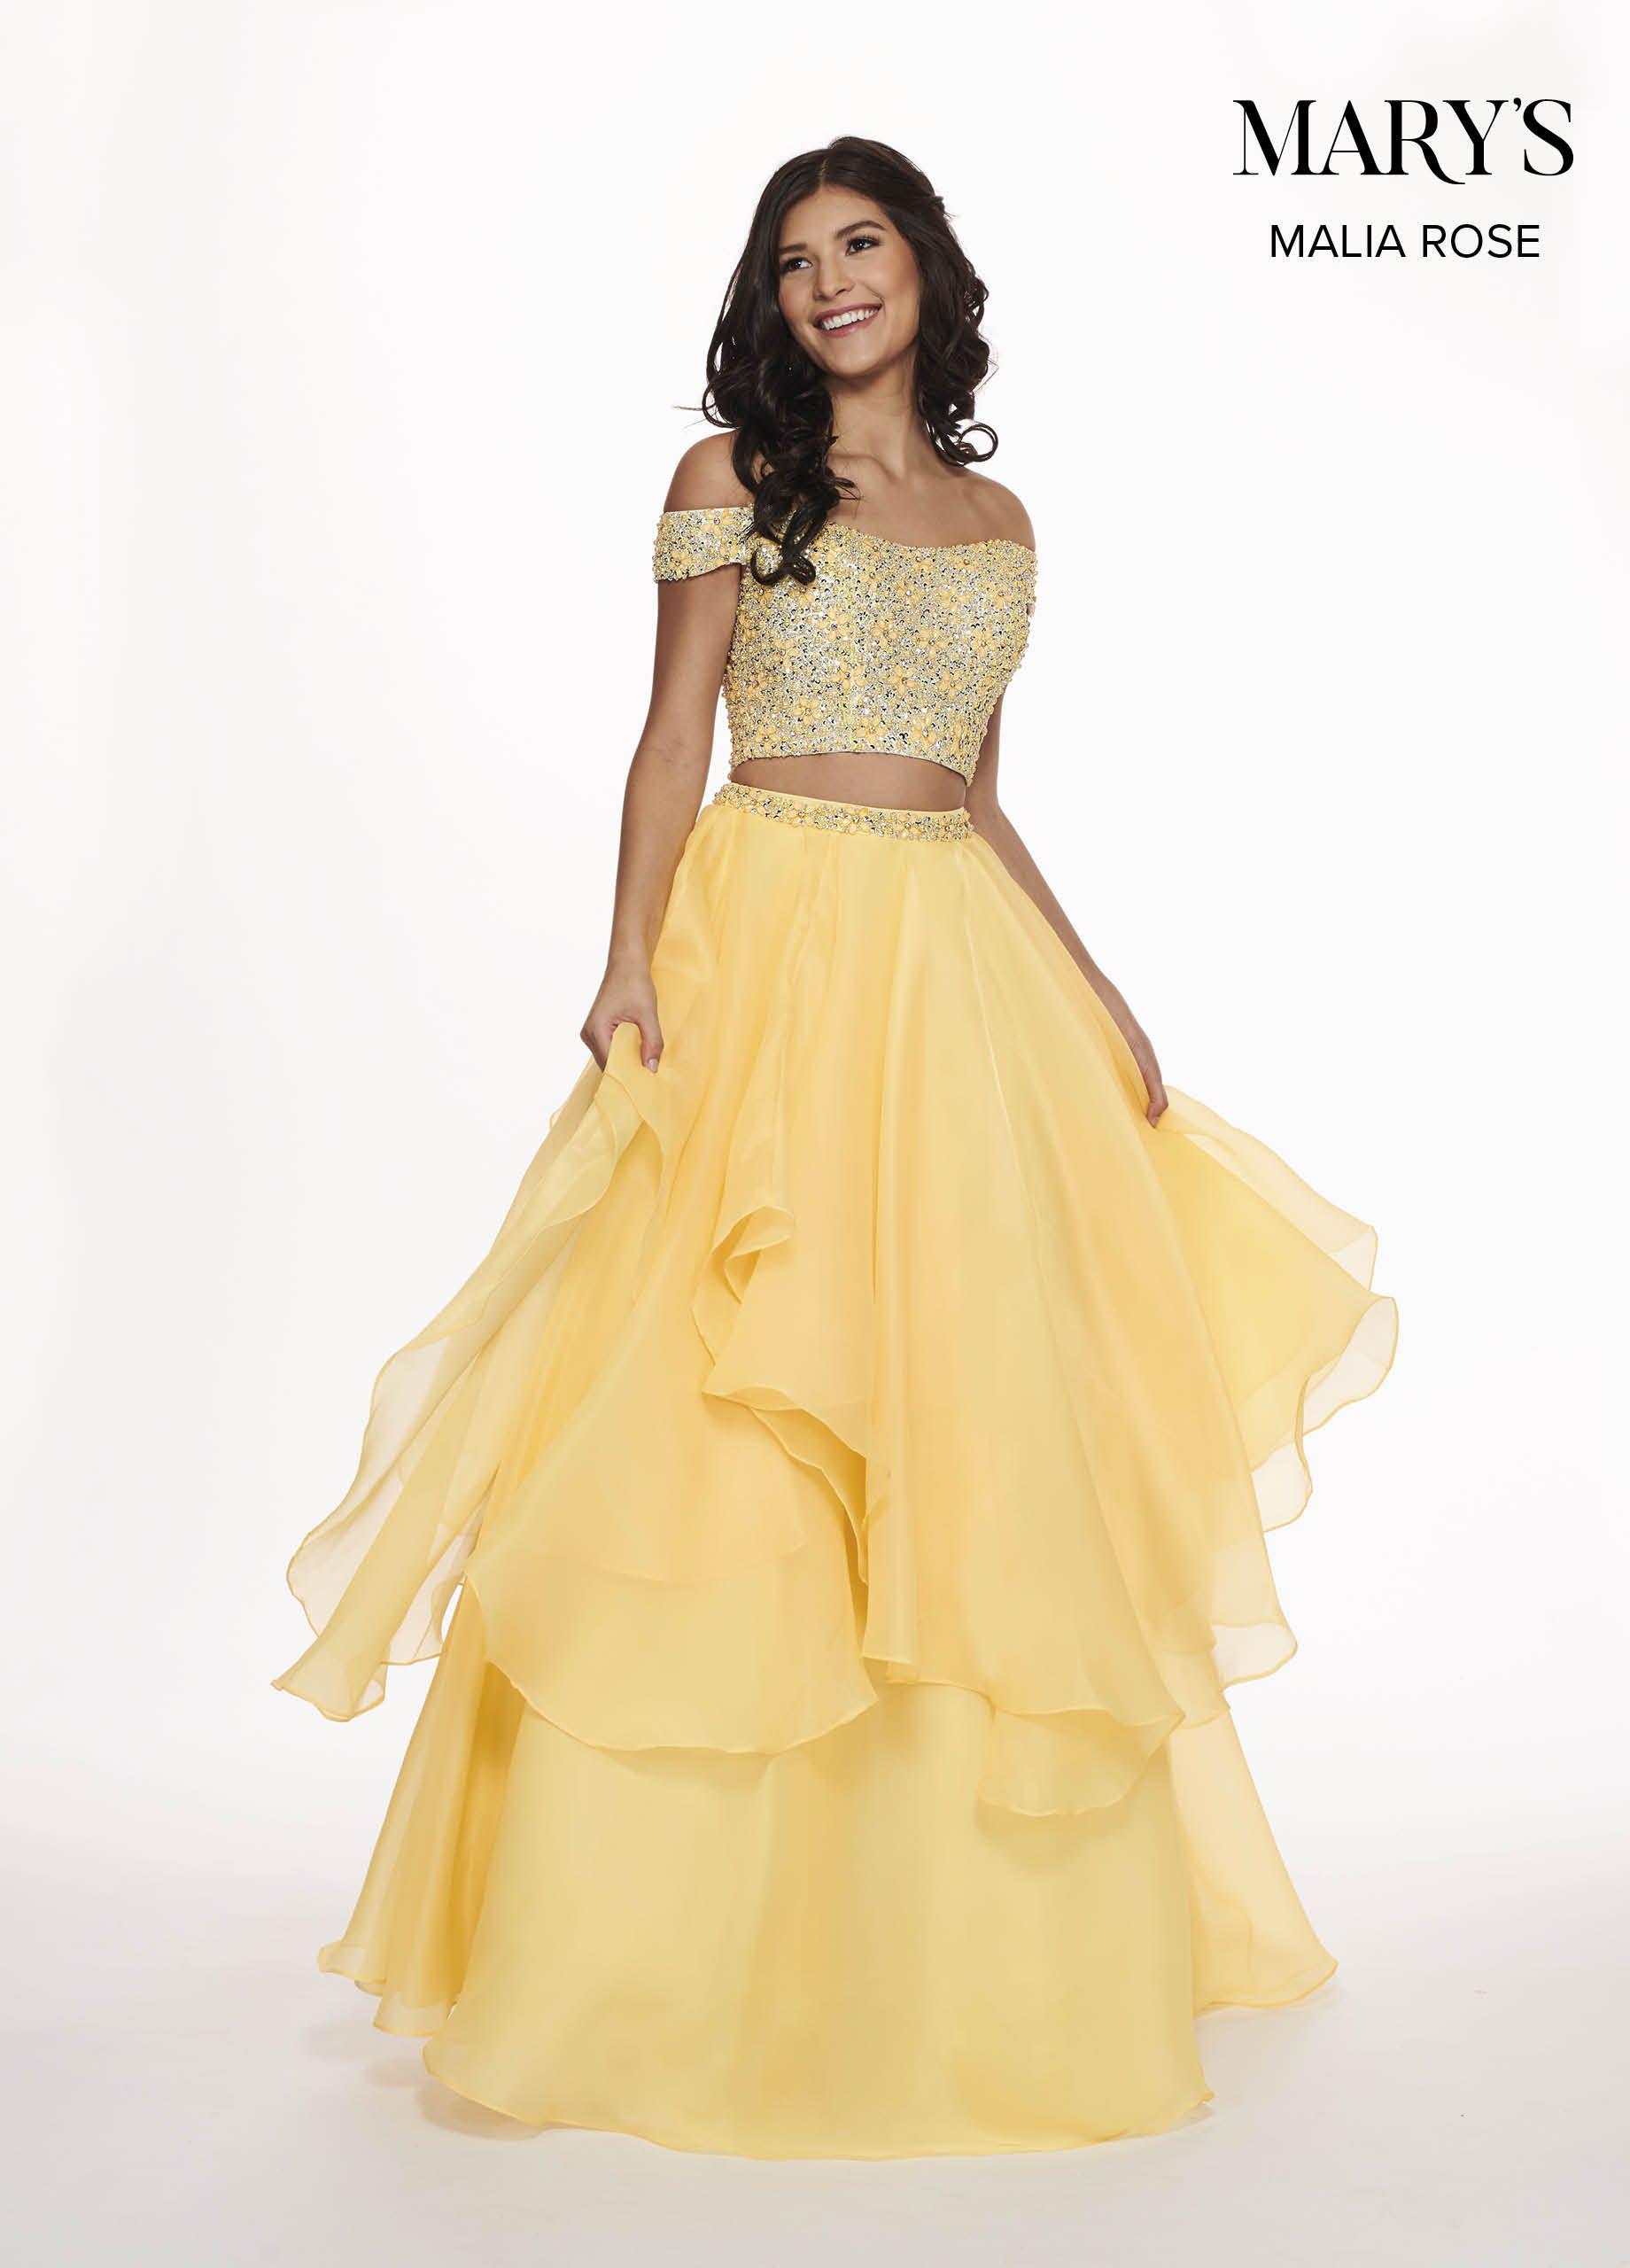 d45702b1f70 2-piece crop top prom dress features off-the-shoulder beaded top and organza  tiered skirt with beaded waistband.